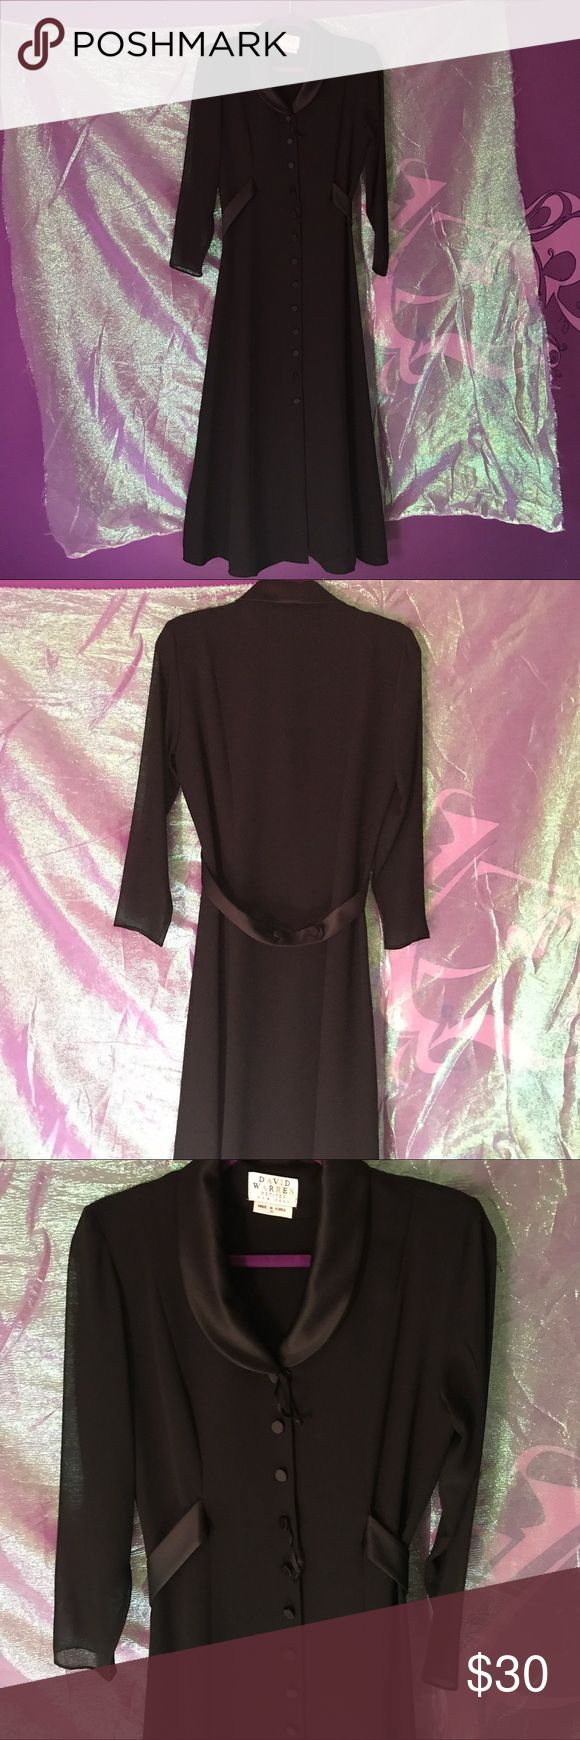 Black mesh robe cover up size 10petites vintage Back at it again with the goth witch vibes. I love this long coverup/robe  with mesh sleeves. Buttons up the front. Size 10P. LINK IN BIO!!! #robe #coverup #mesh #black #witch #goth #emo #coat #sexy #lingerie #davidwarren #petites #womensfashion #womensclothing #womensdress #long #forsale #depop #poshmark #vintes #buttonup #black #queen #smallbusiness #blackowned david warren Intimates & Sleepwear Robes